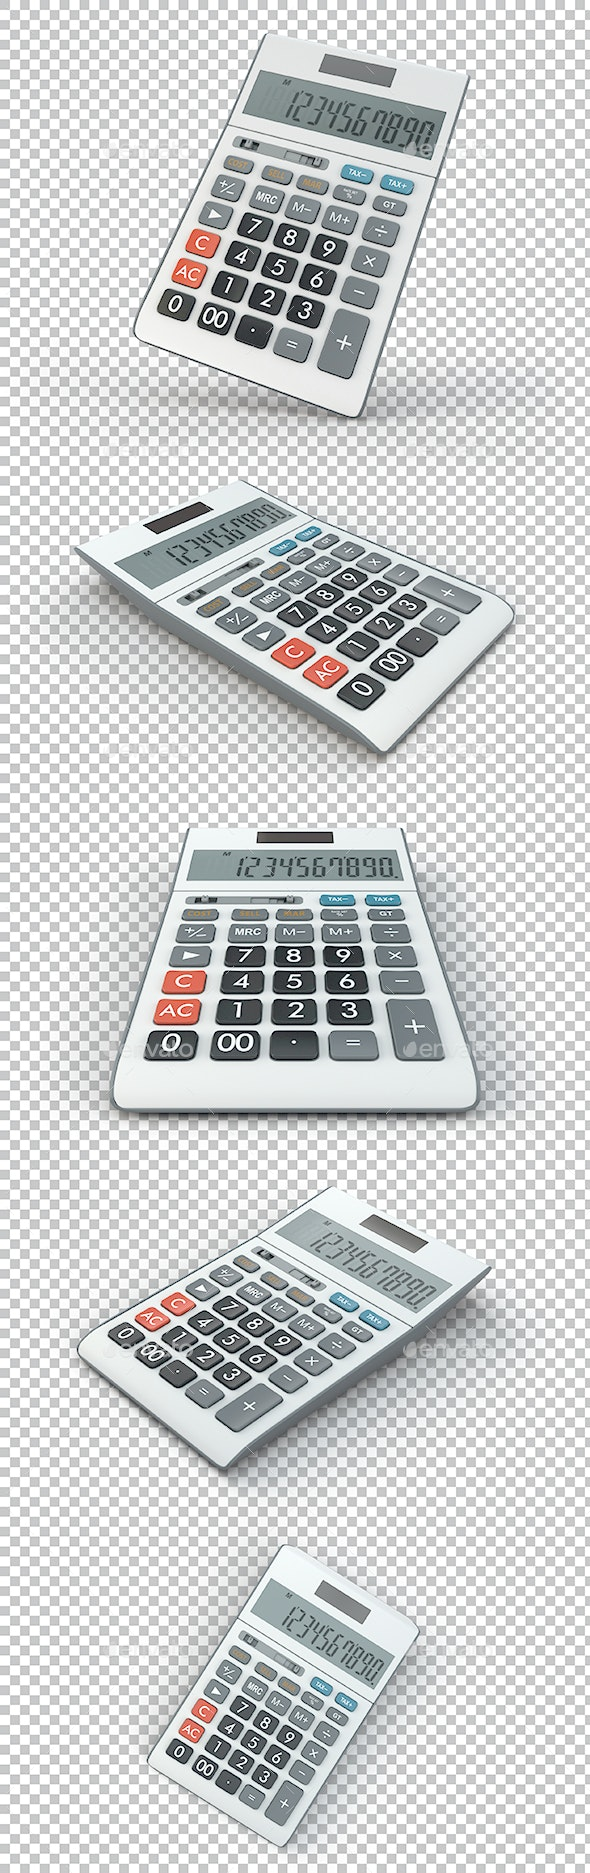 Calculator - Objects 3D Renders